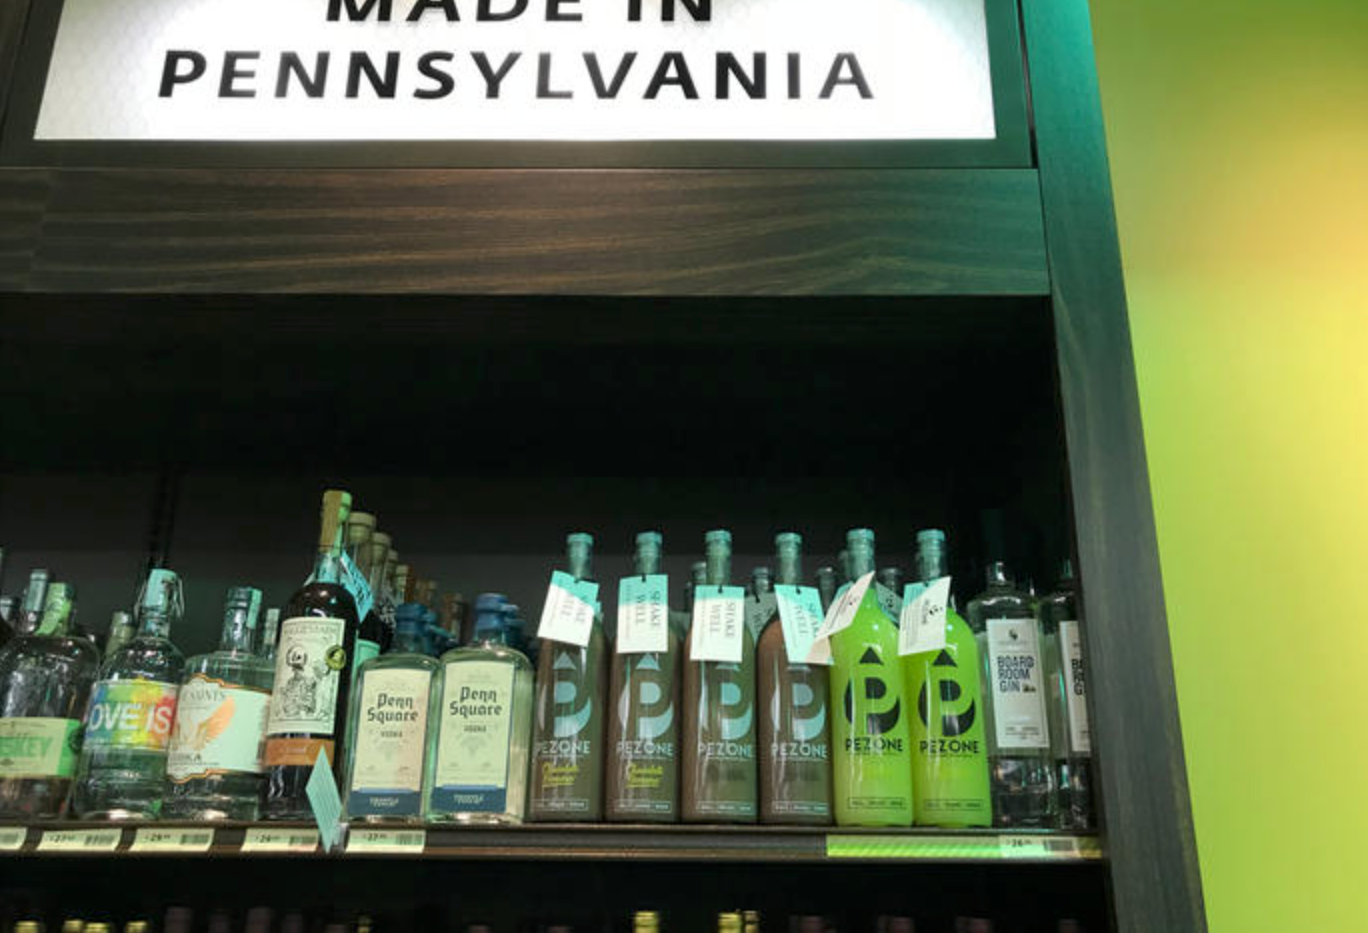 Pezone hits PA. Wine and Spirits